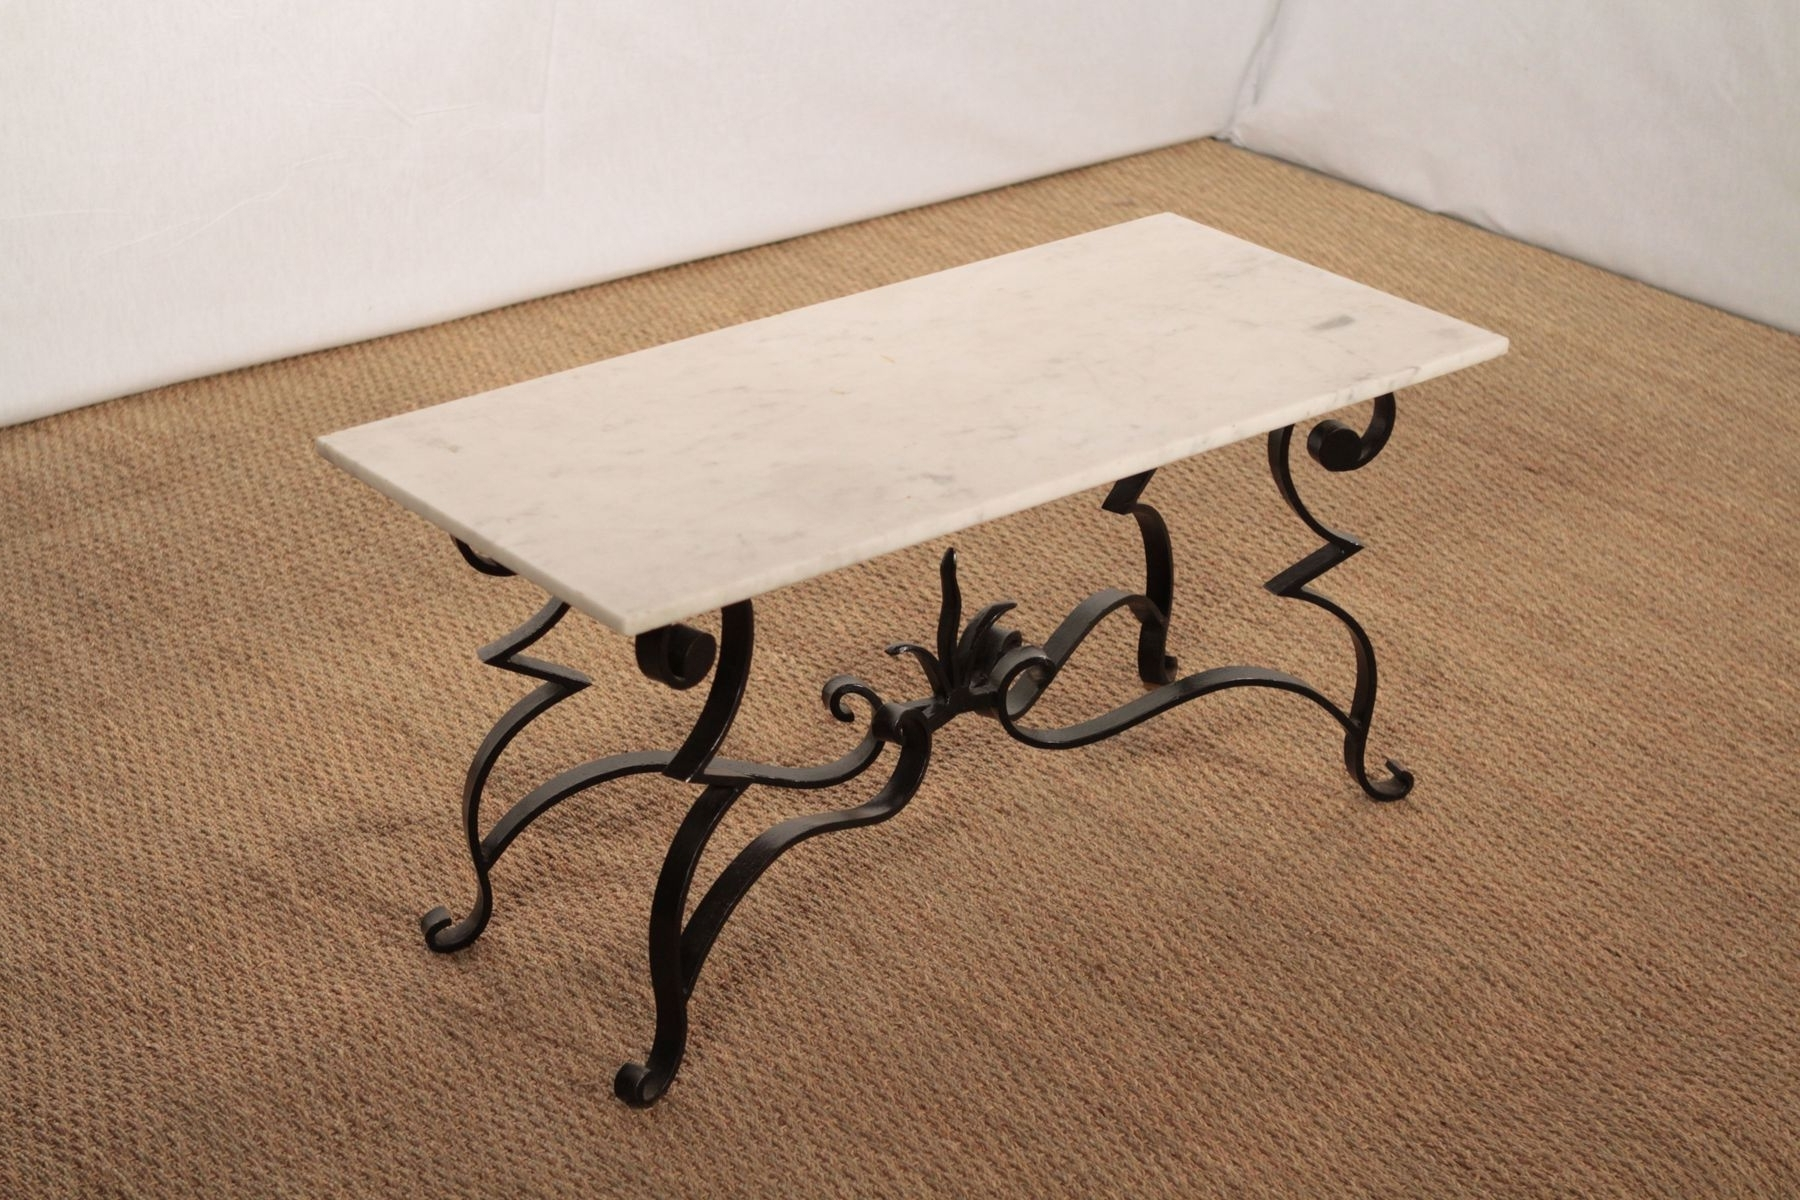 2018 Iron Marble Coffee Tables With Wrought Iron And Marble Coffee Table For Sale At Pamono (View 1 of 20)